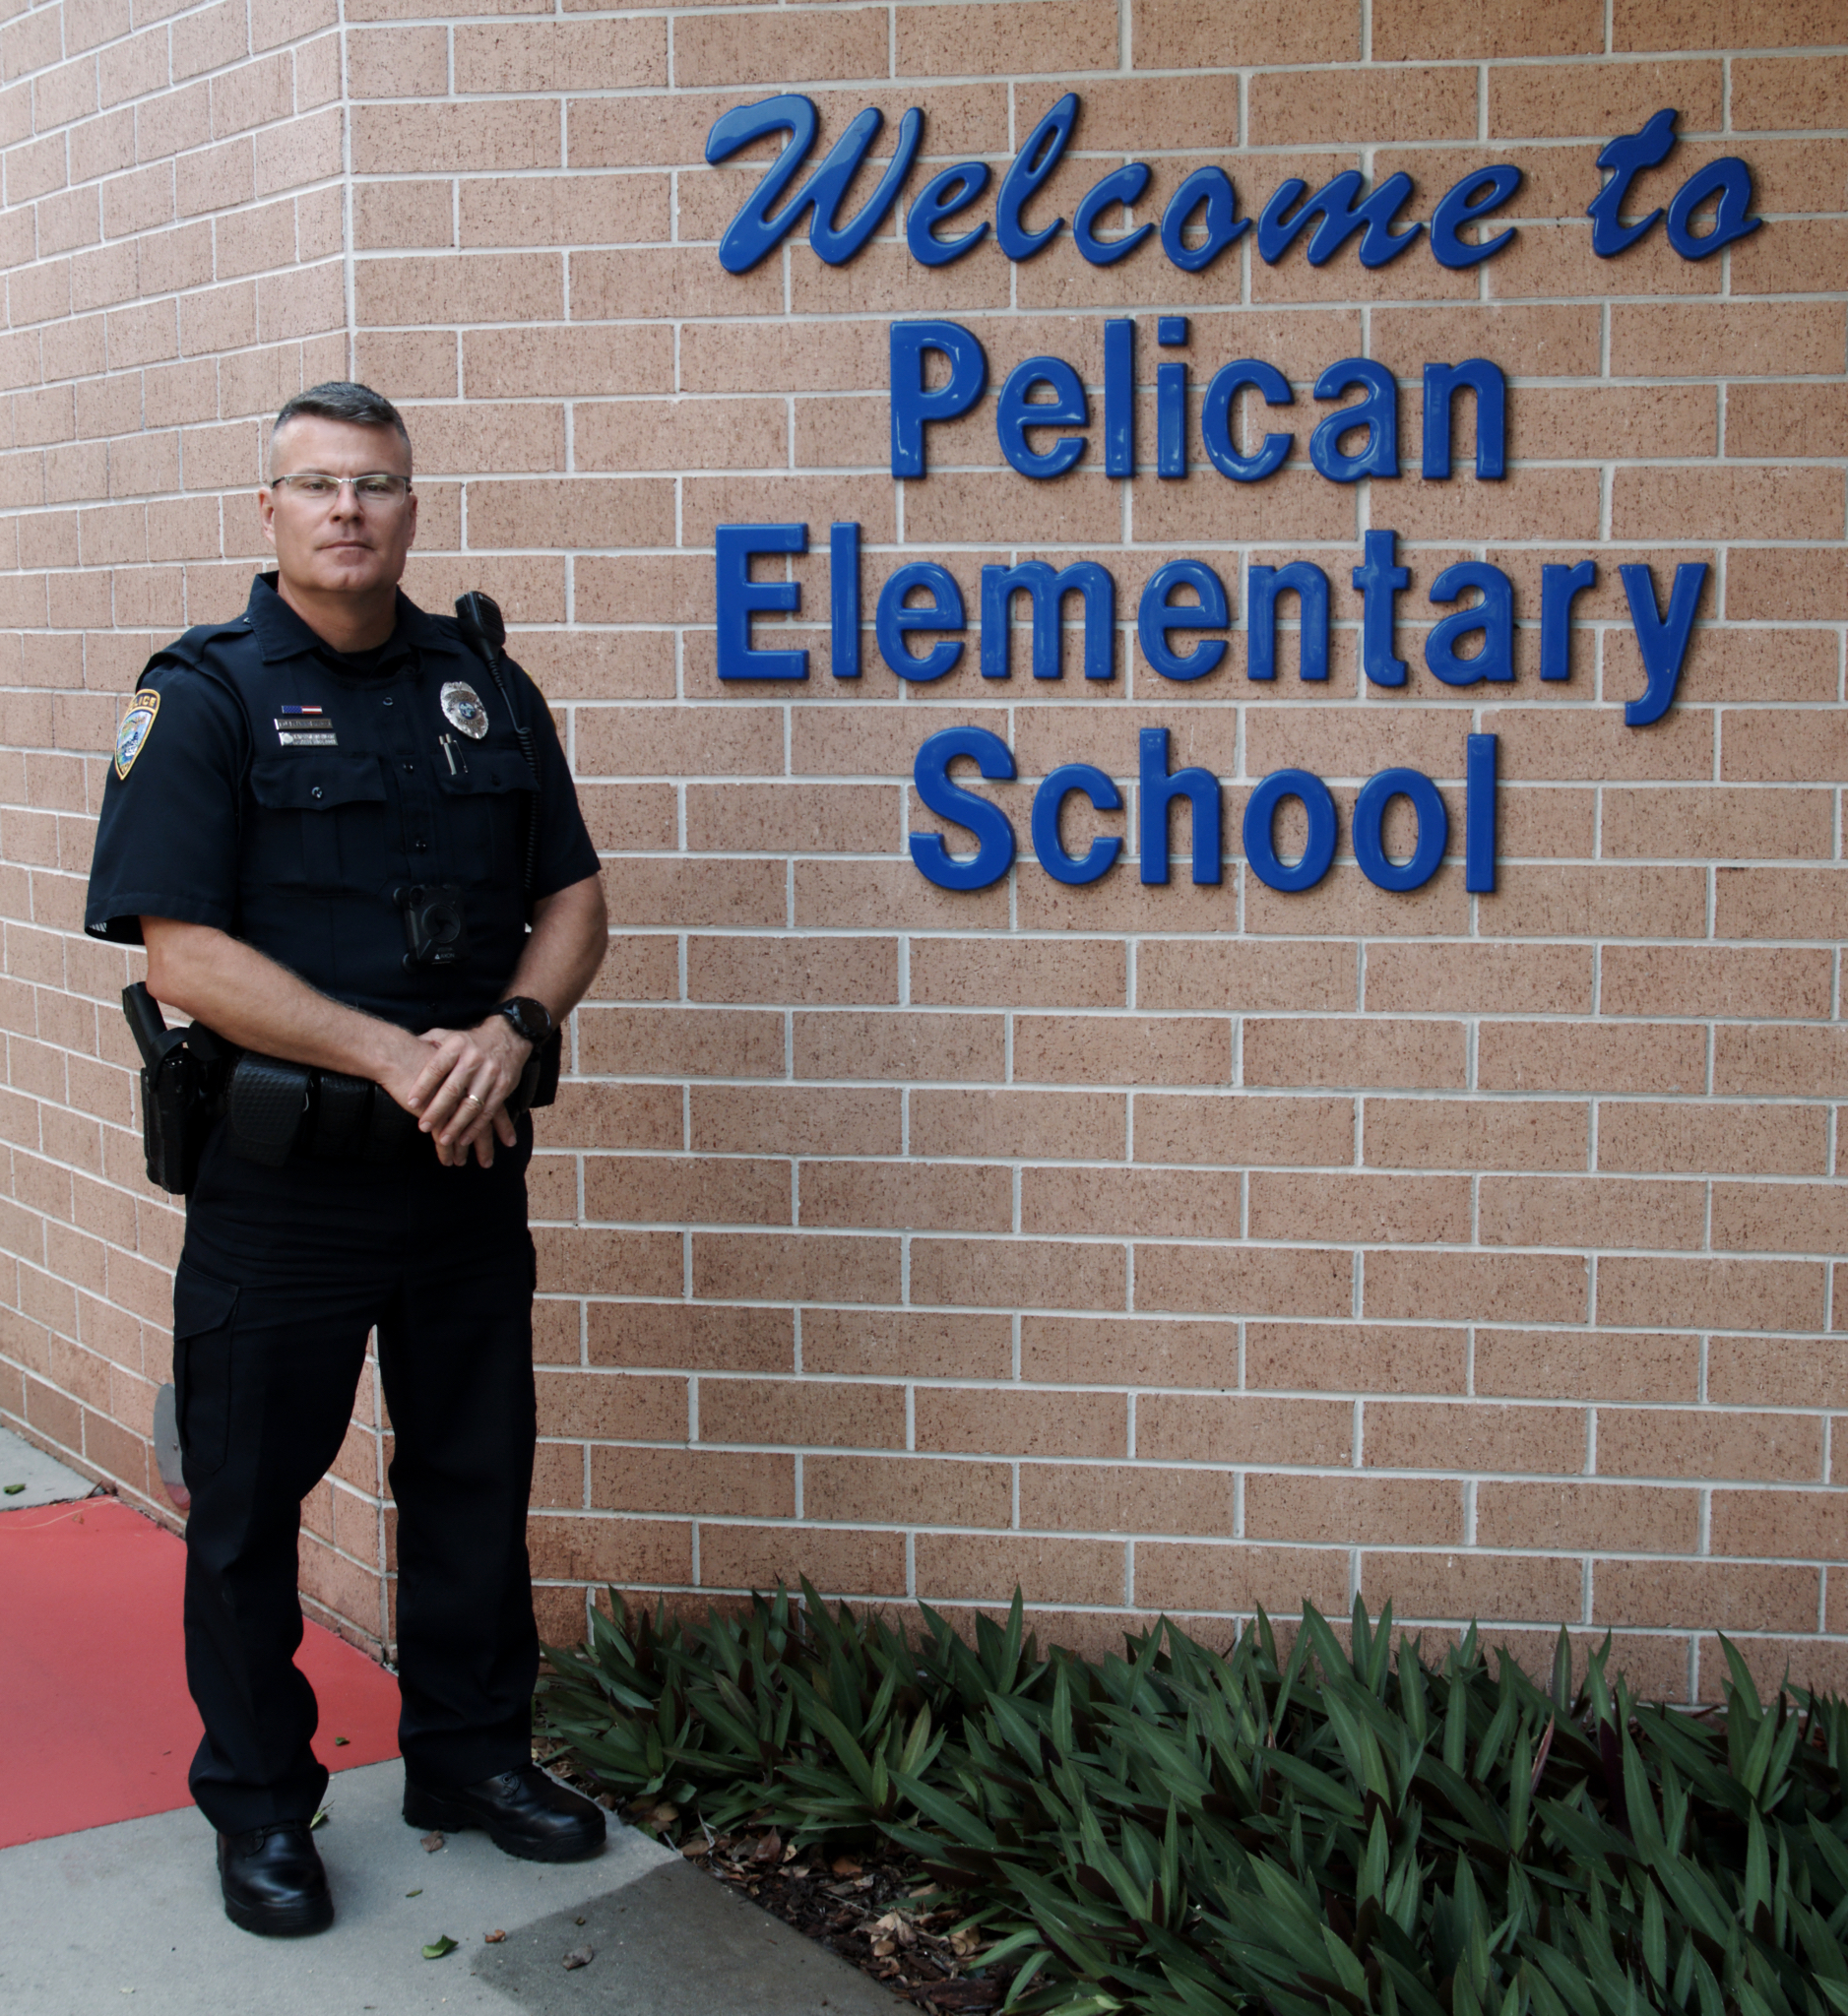 Pelican Elementary - 3525 SW 3rd Ave, Cape Coral, FL(239) 549-4966SRO Trent Westerlundtwesterl@capecoral.net